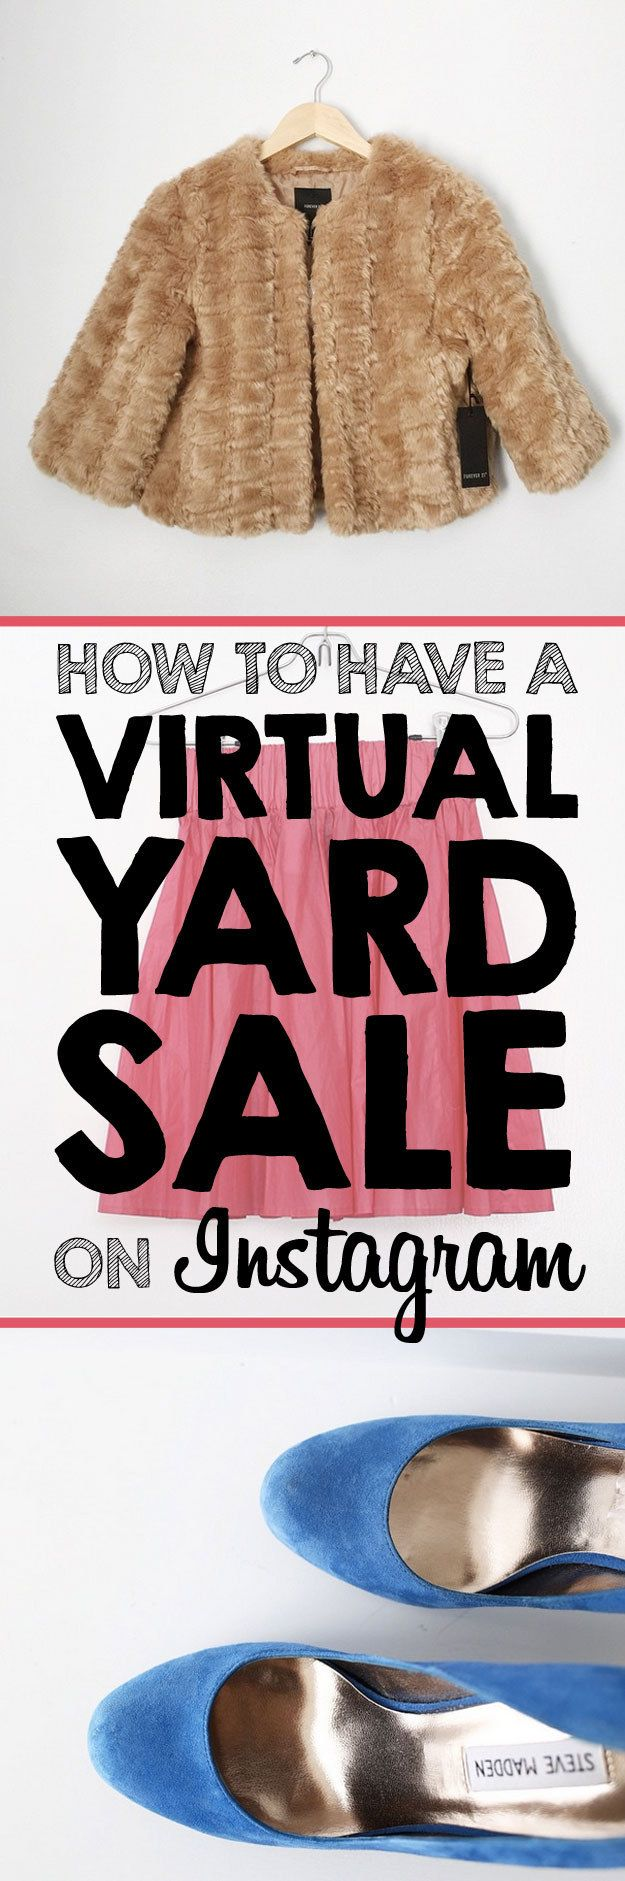 Here's How To Have An Awesome Virtual Yard Sale On Instagram